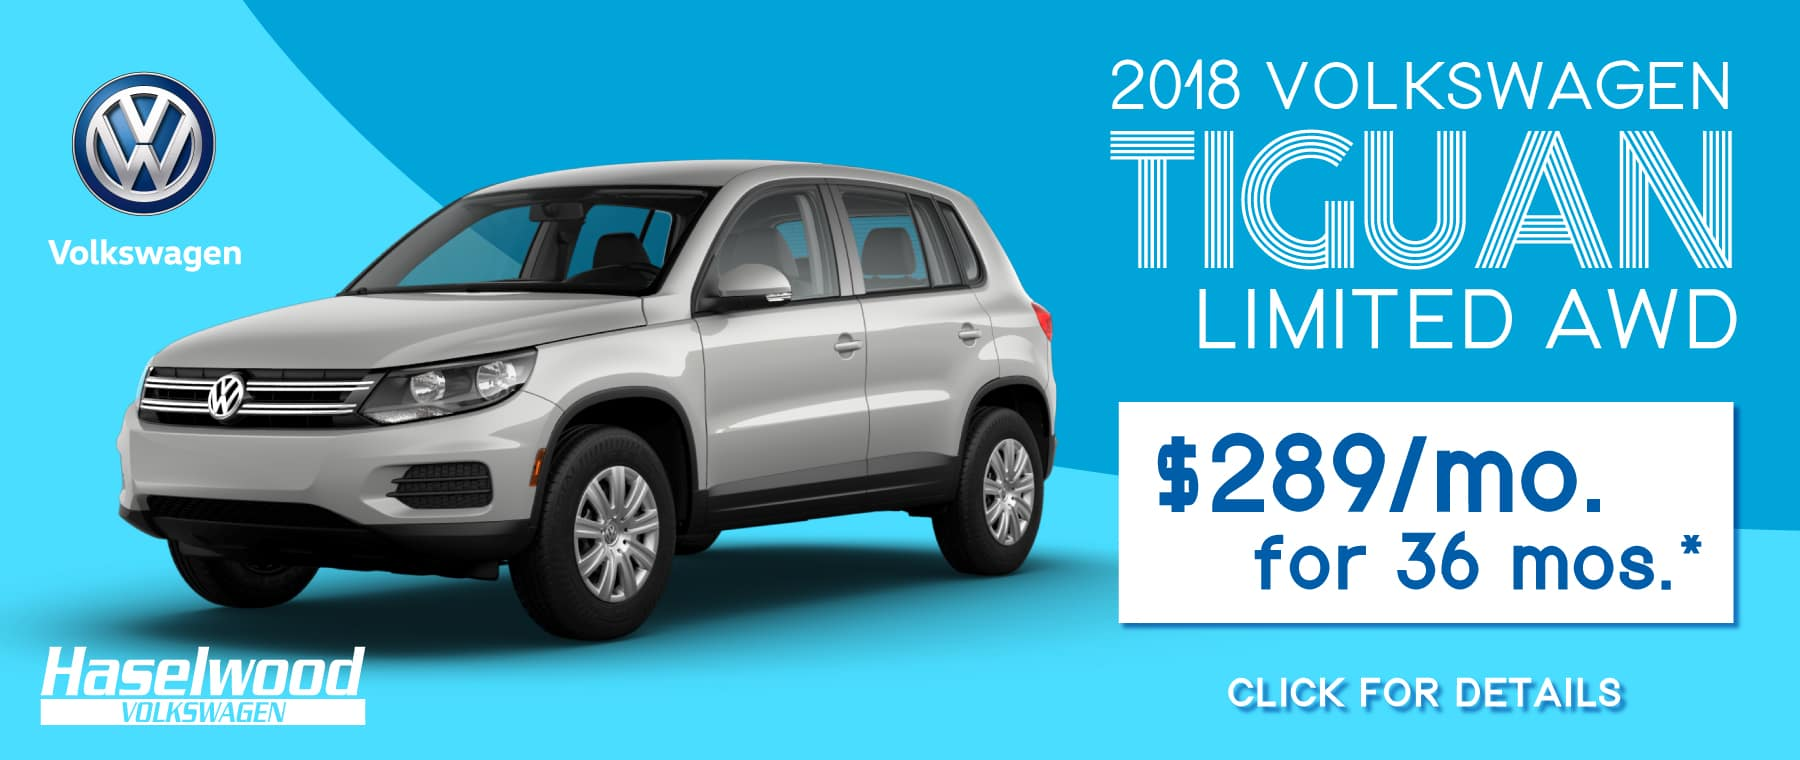 2018 Volkswagen Tiguan LIMITED AWD  $289/mo. For 36 mos.*